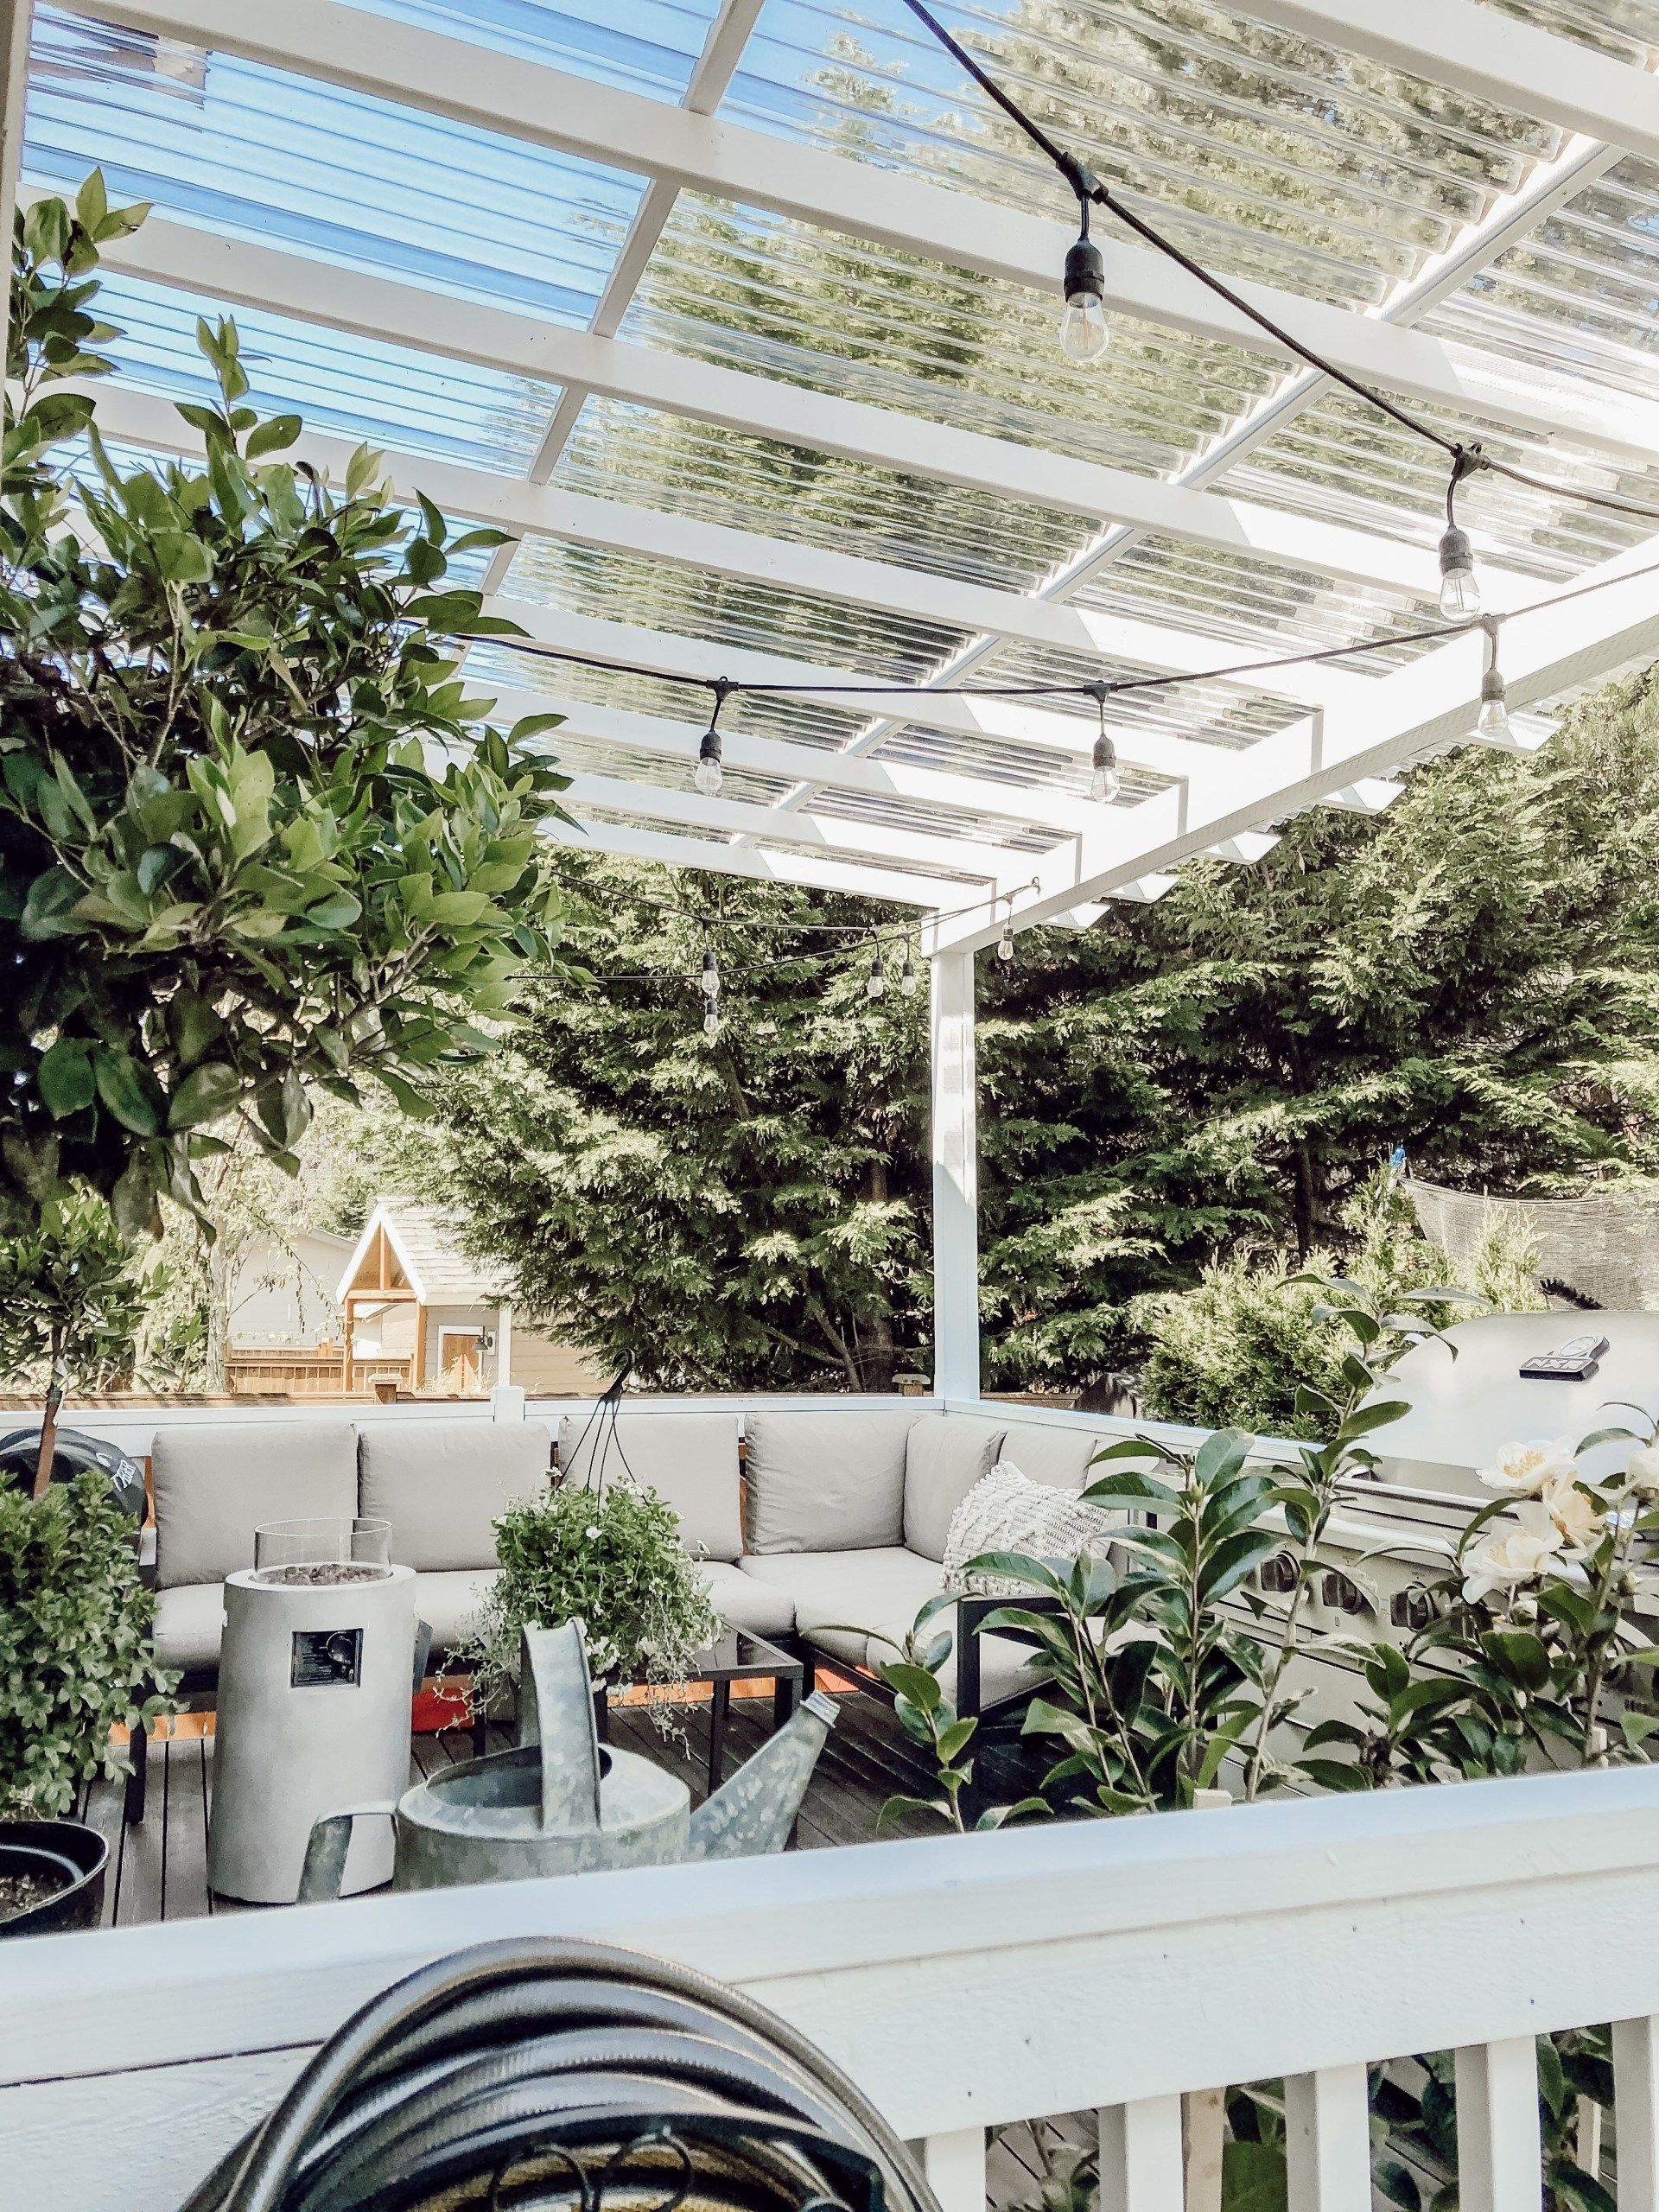 Diy Clear Corrugated Covered Pergola Attached To The House And An Existing Deck Rain And Pine Deck With Pergola Covered Pergola Building A Pergola